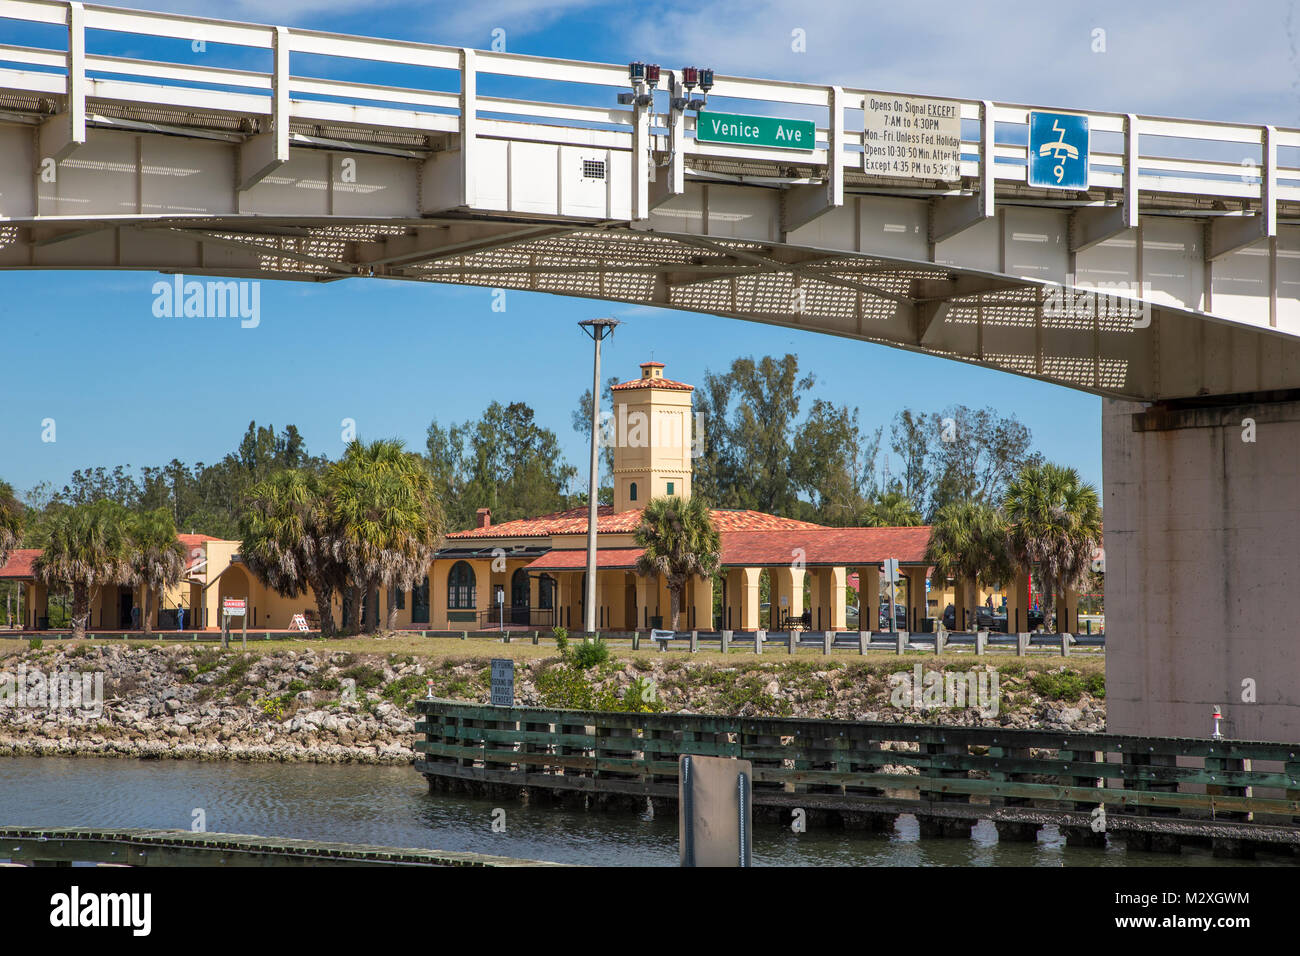 Historic Venice Seaboard Air Line Railway Station also known as the Venice Train Depot though the Venice Ave Bridge - Stock Image